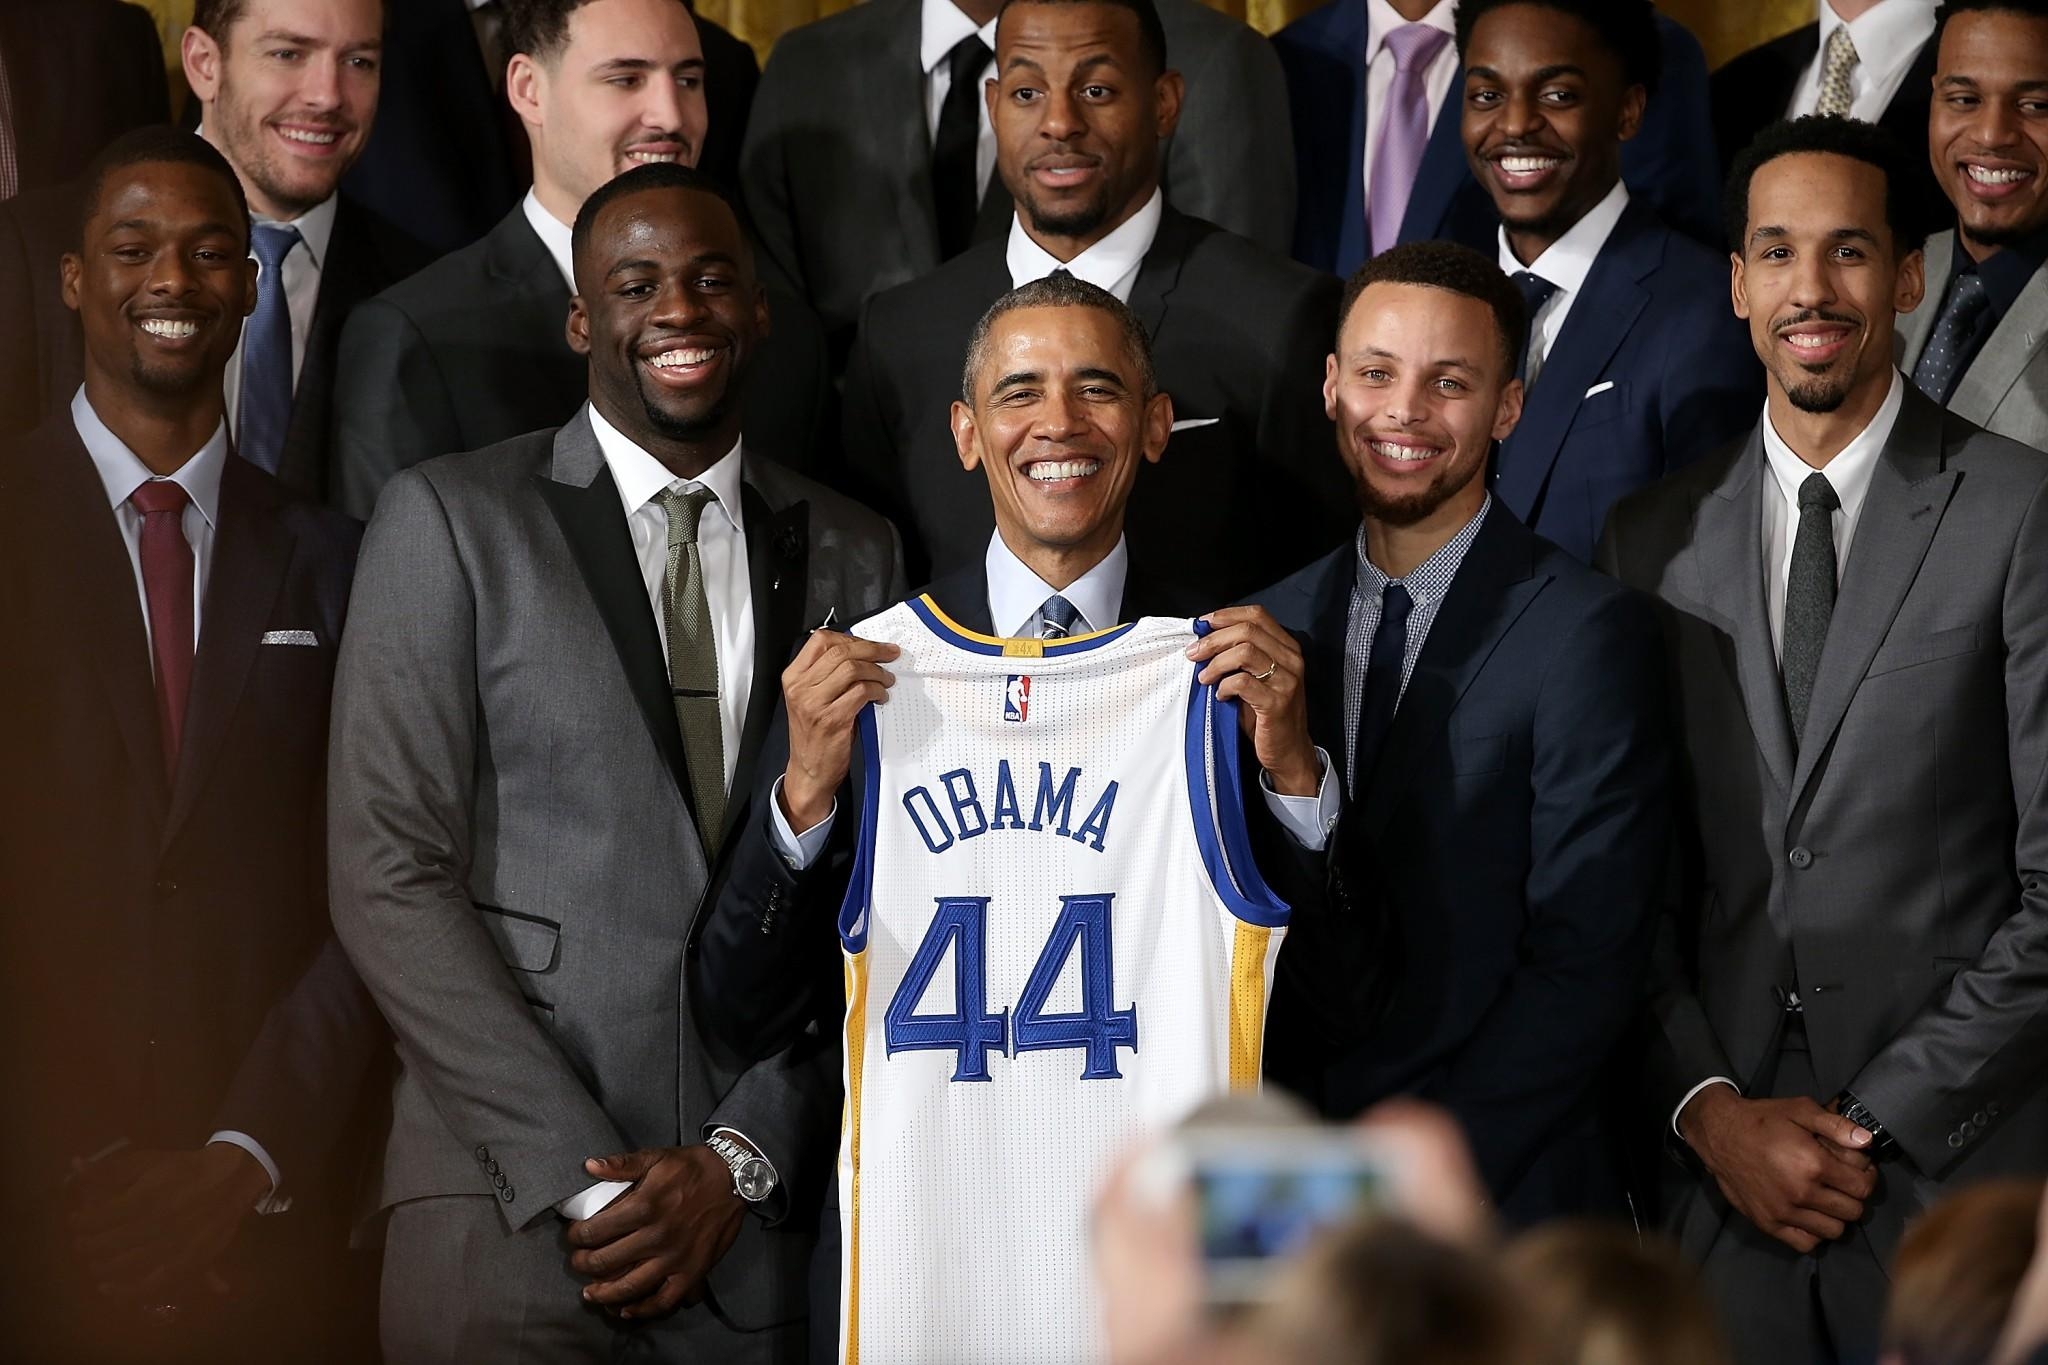 ... hot brian scalabrine 24 21 or 44 stephen curry pays tribute to  president obama with mlk store image is loading boston celtics brian  scalabrine white ... 244e5d331